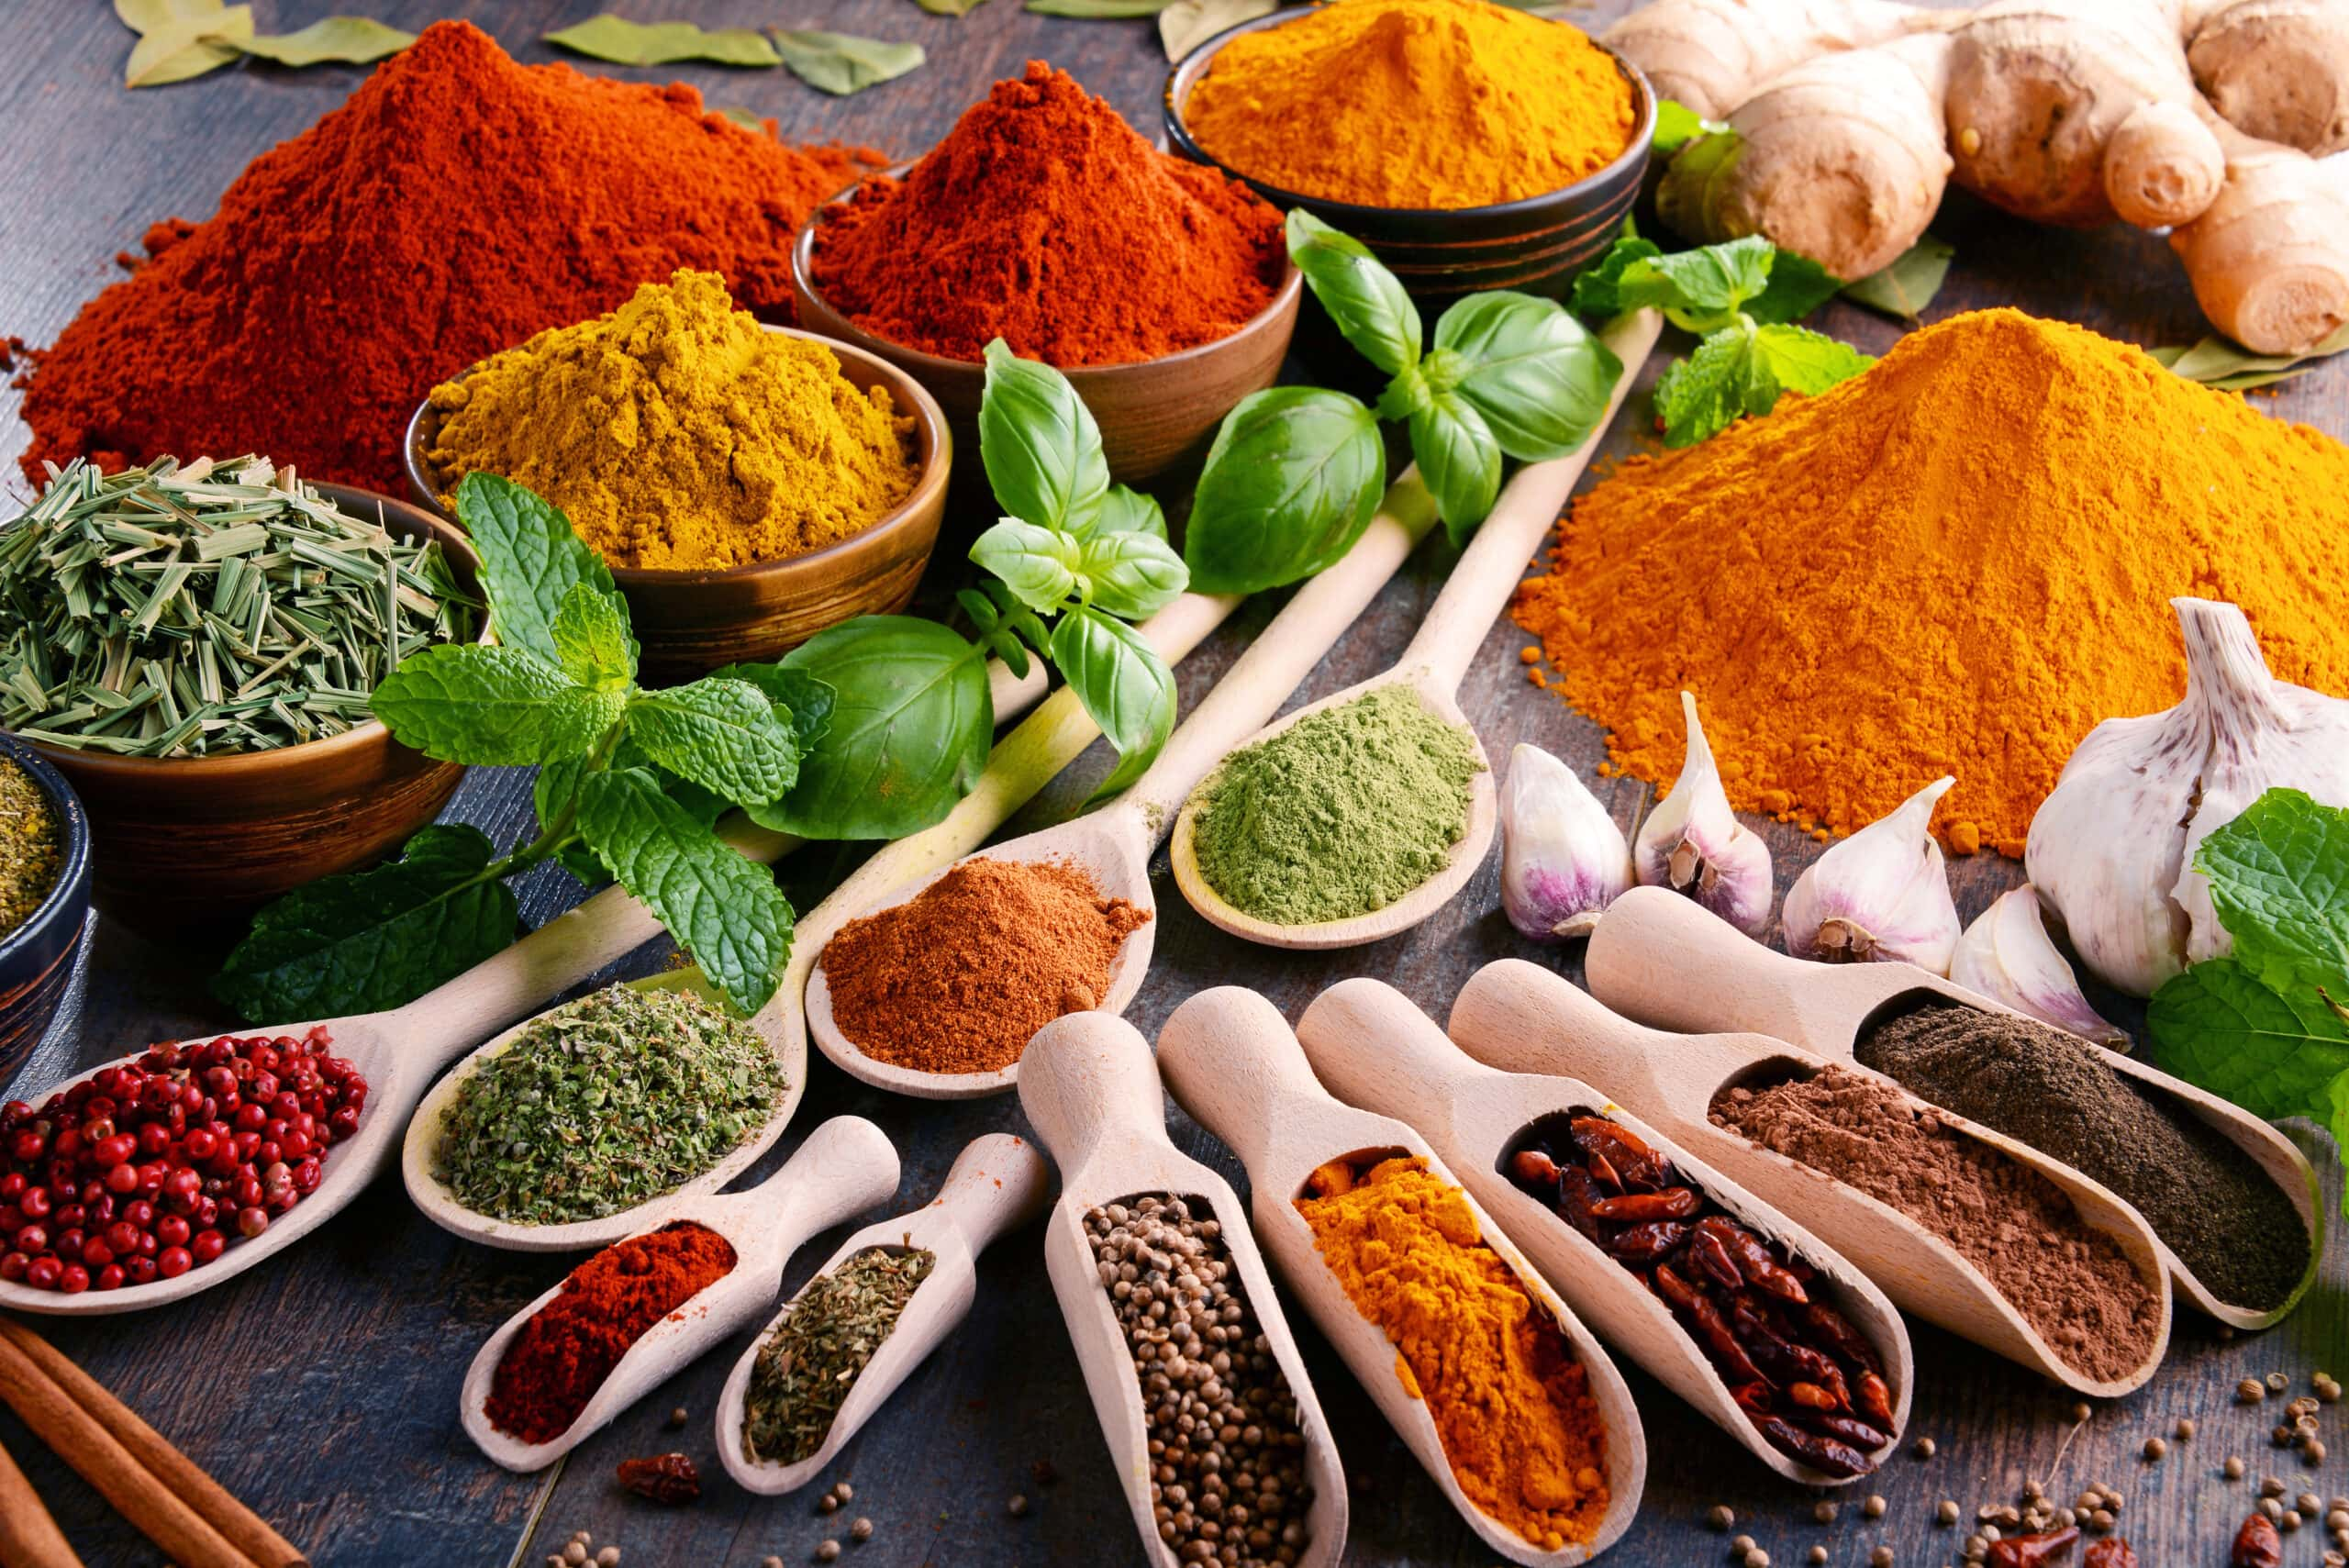 Spices together